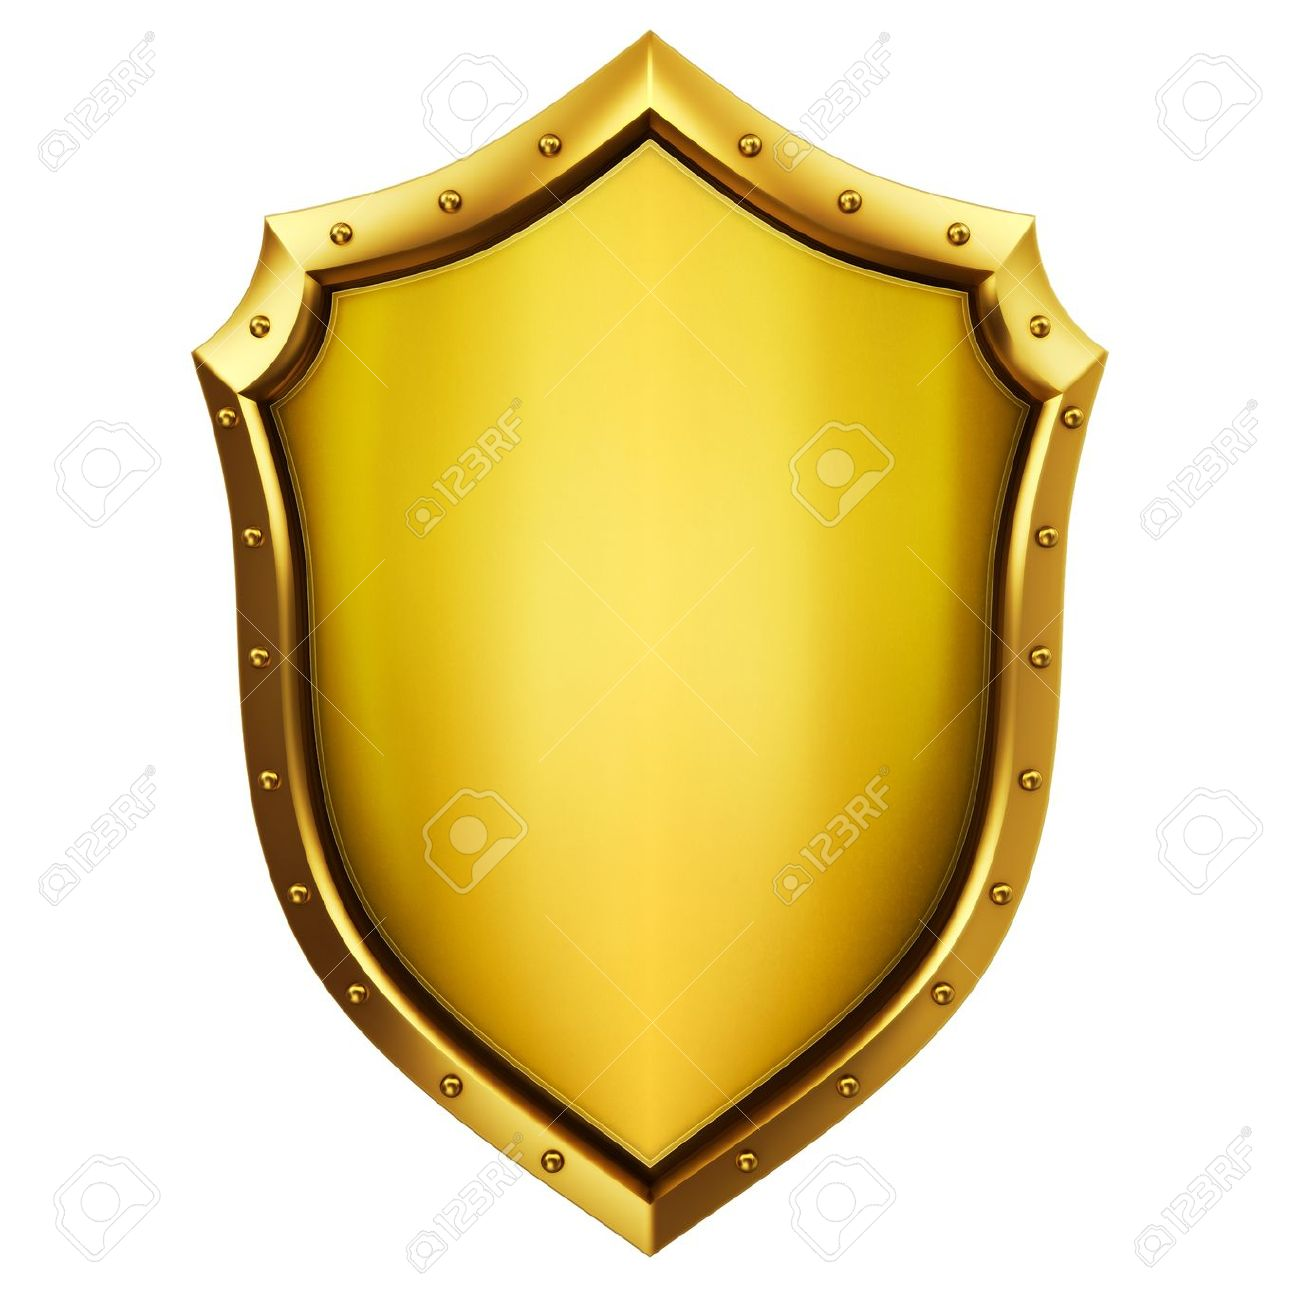 shield hd png transparent shield hdpng images pluspng